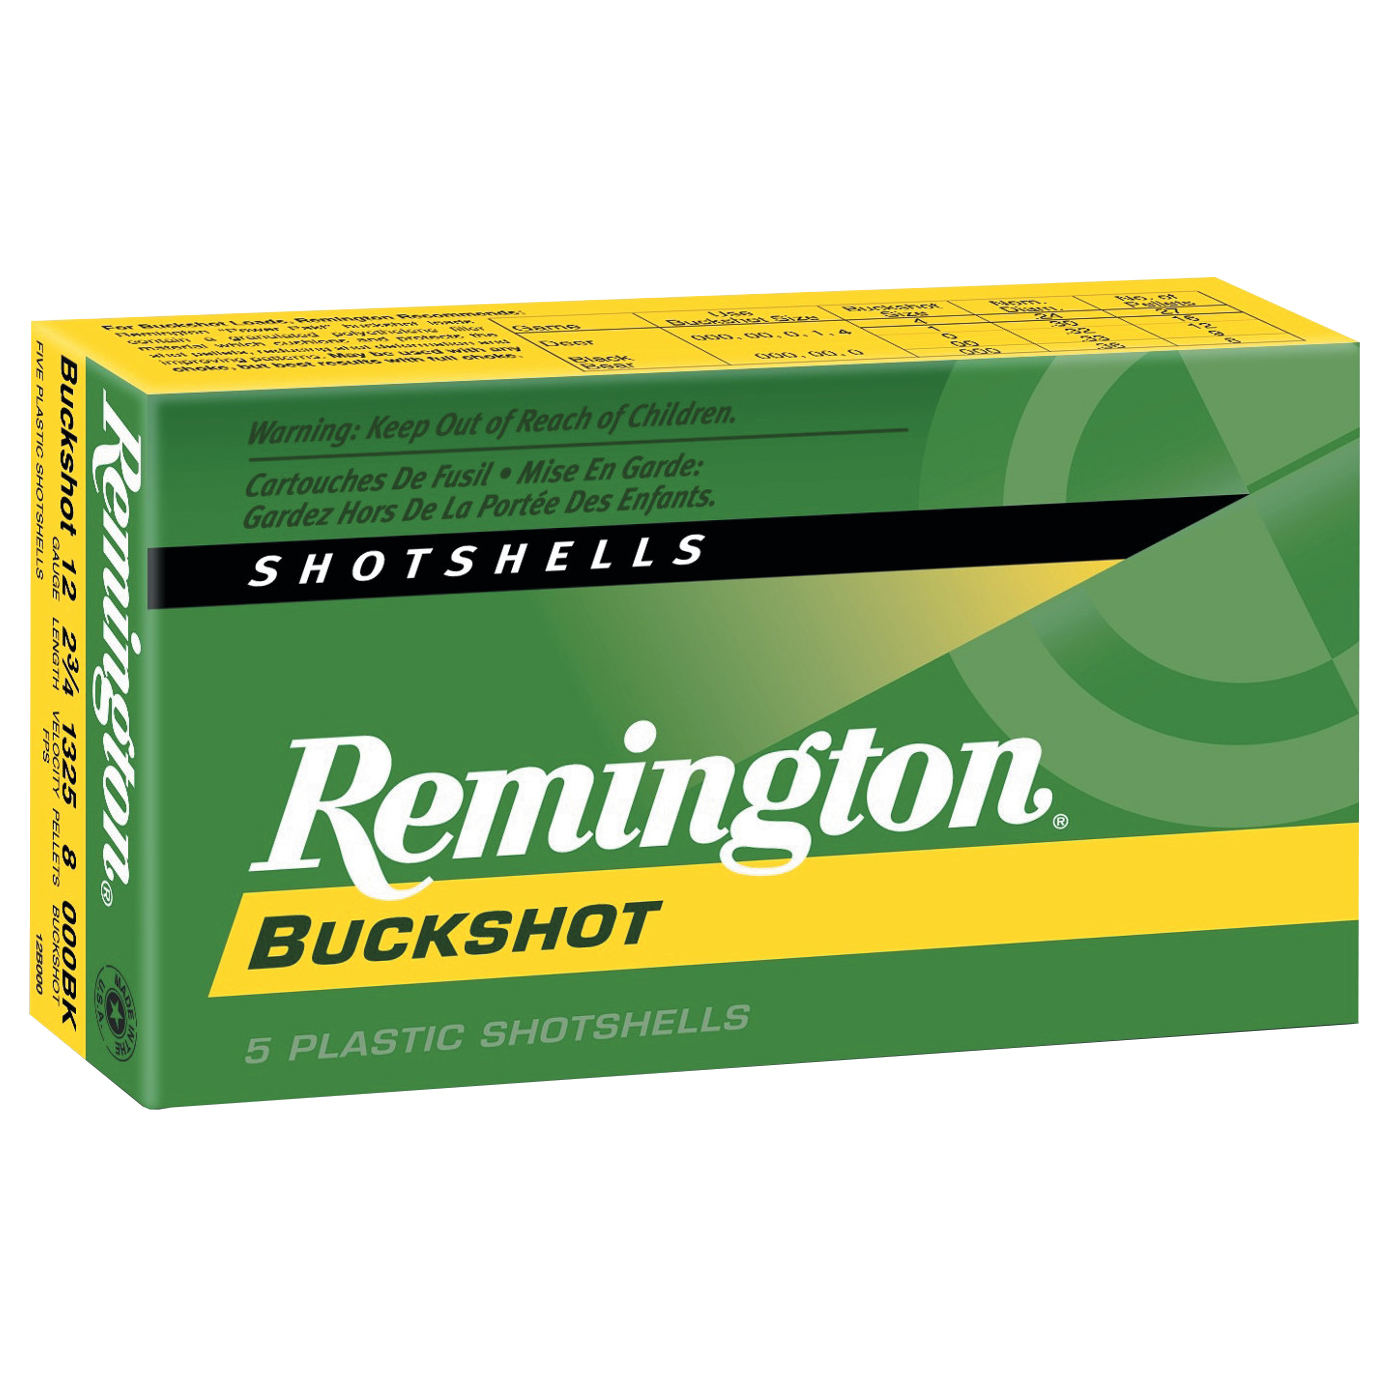 Remington Express Buckshot, 12-ga, 2-3/4″, 9 Pellets, #00, 5 Rounds